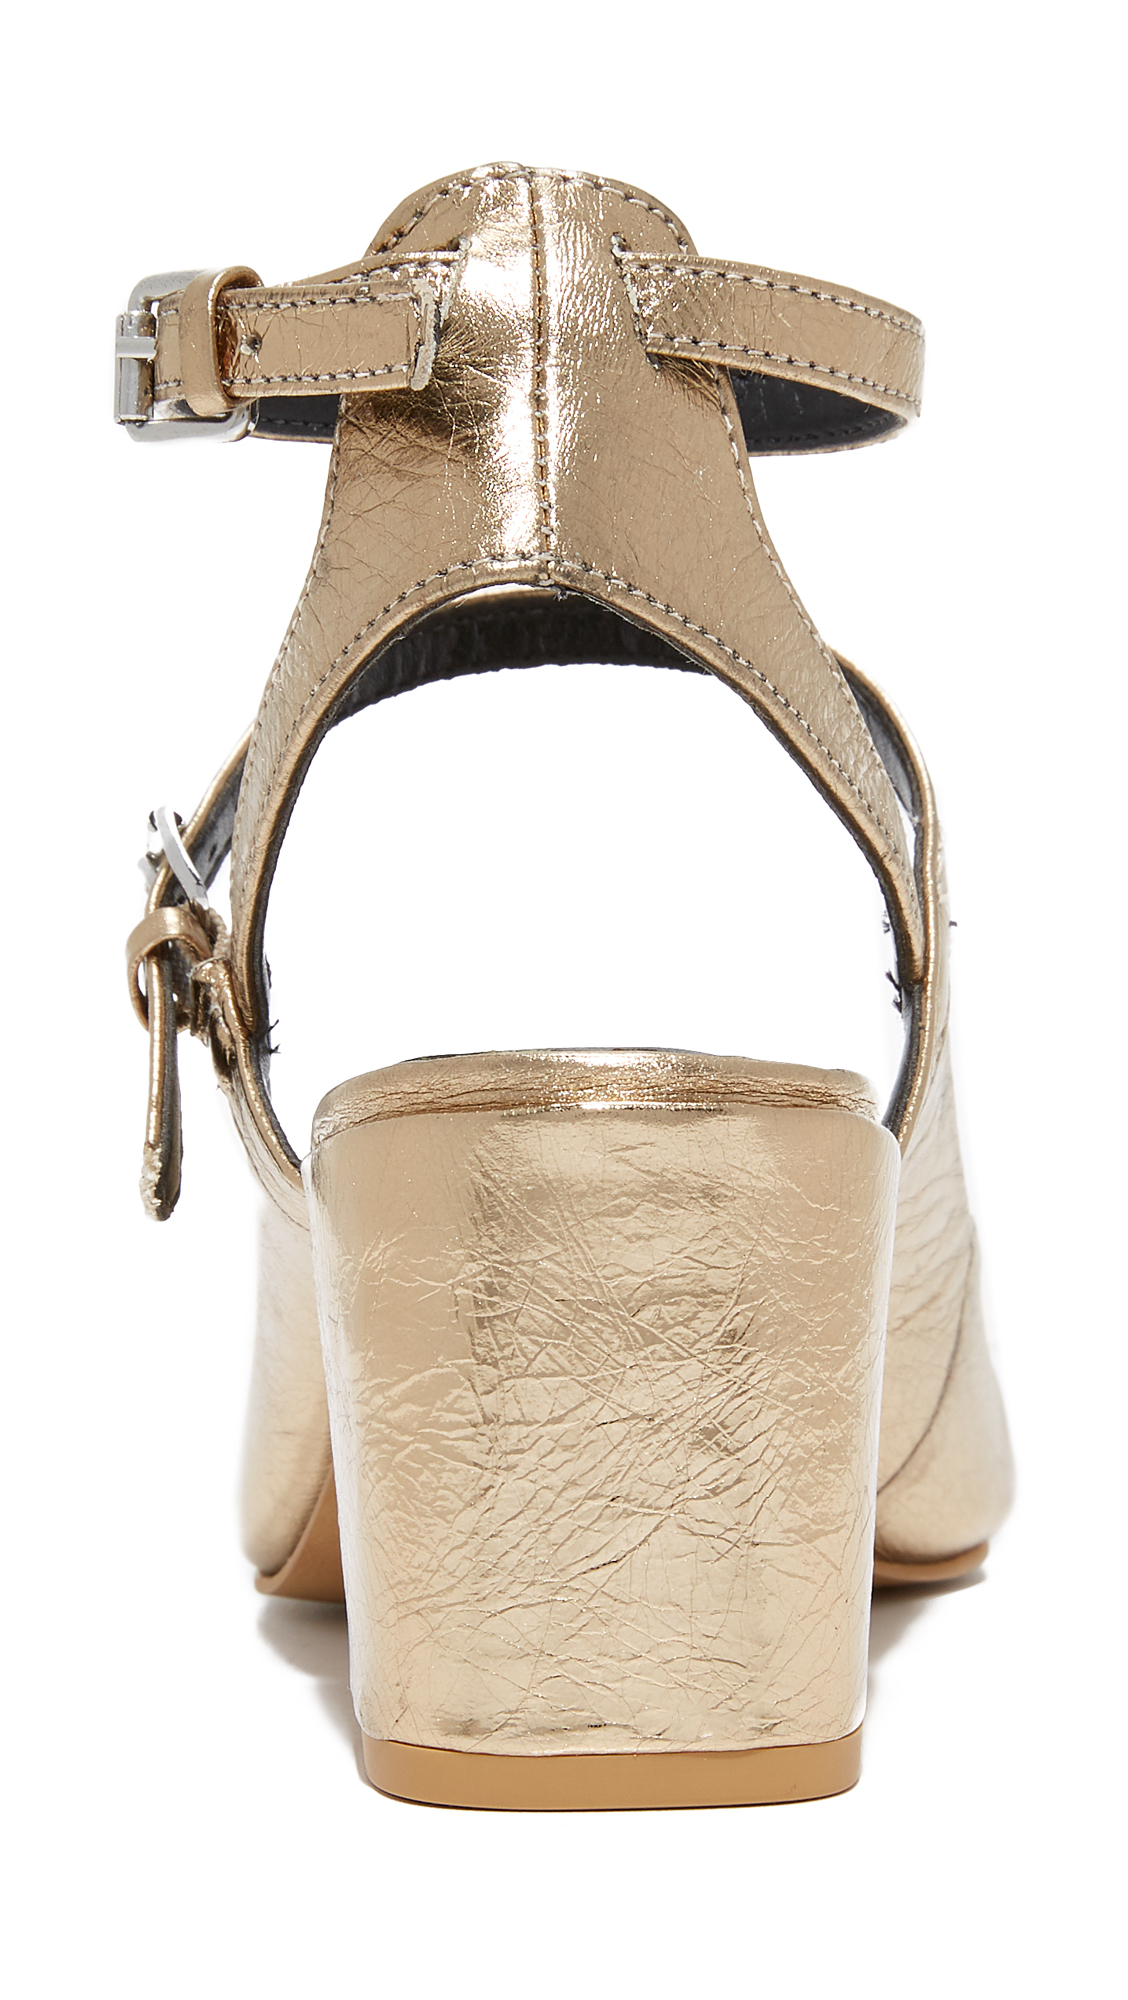 Rebecca Minkoff Brooke Mary Jane Pumps Shopbop Janes Straps Circle Block Pointed Toe Wedges Shoes Black